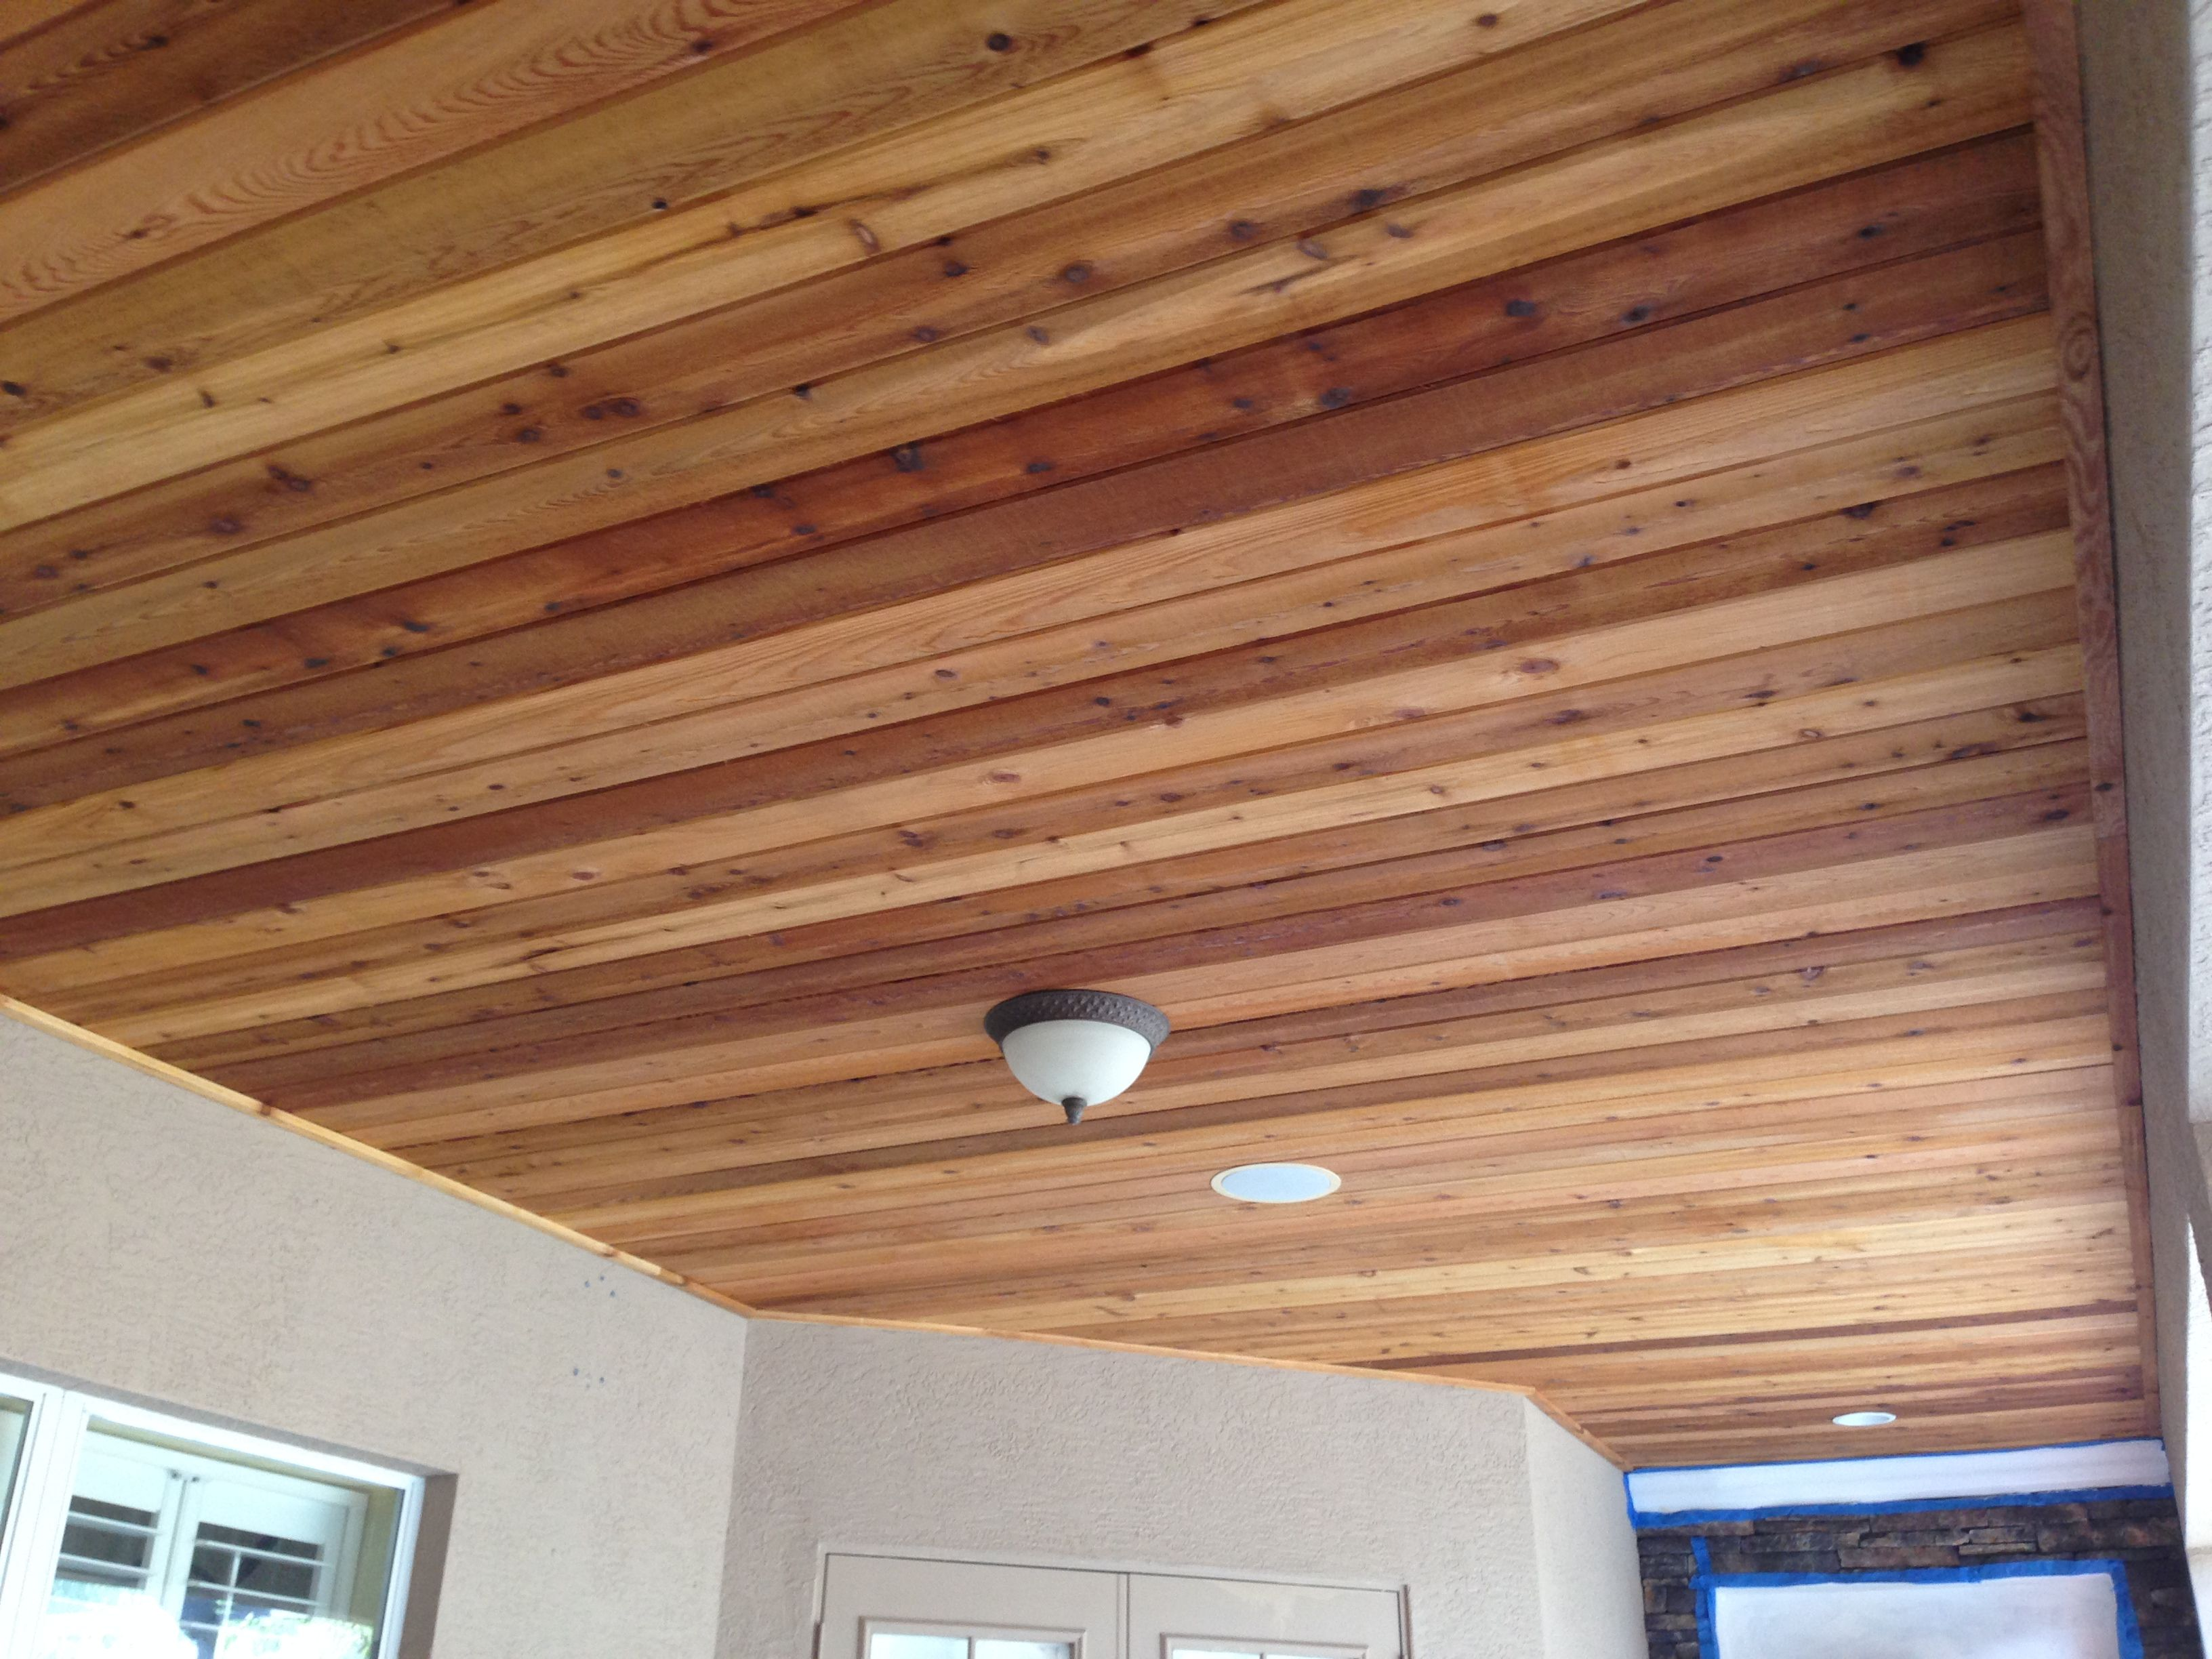 Stained Tounge And Groove Exterior Wood Porch Ceiling - Year